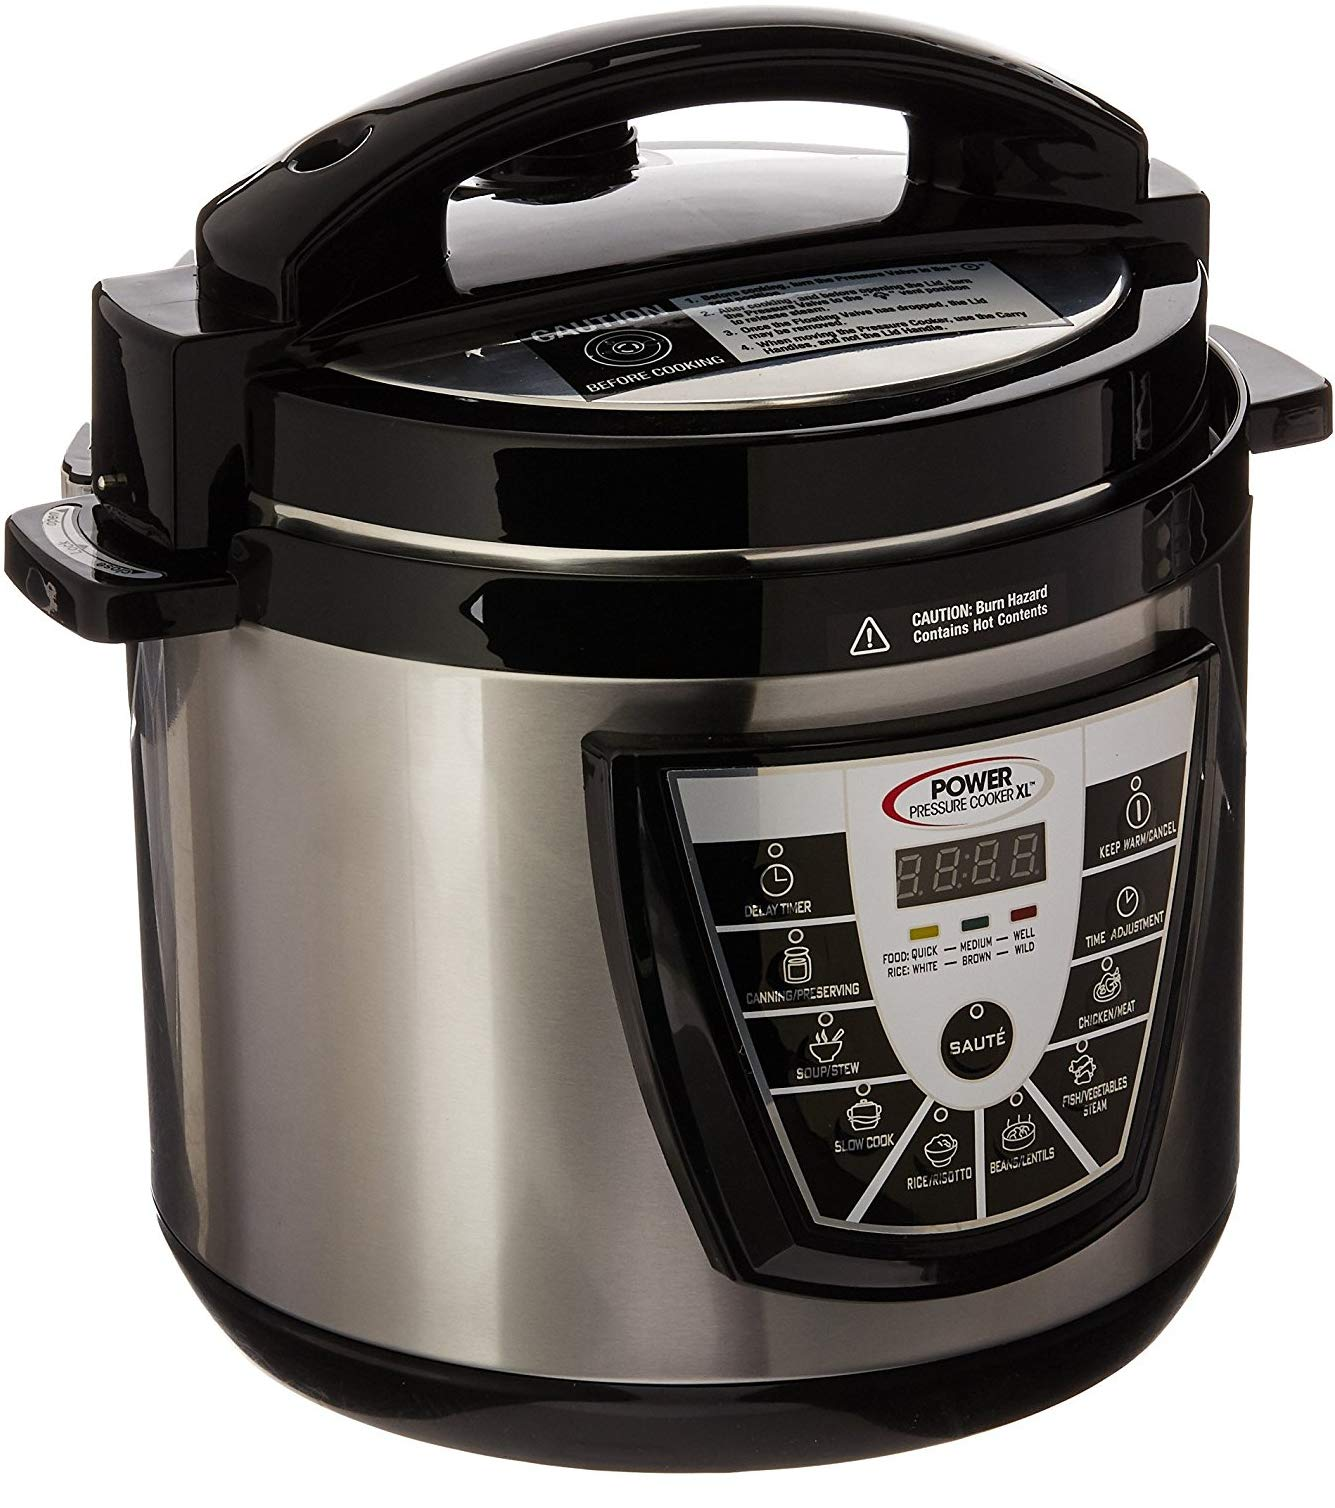 Power Pressure Cooker XL 6 Quart - Silver by Power Pressure Cooker XL (Image #2)